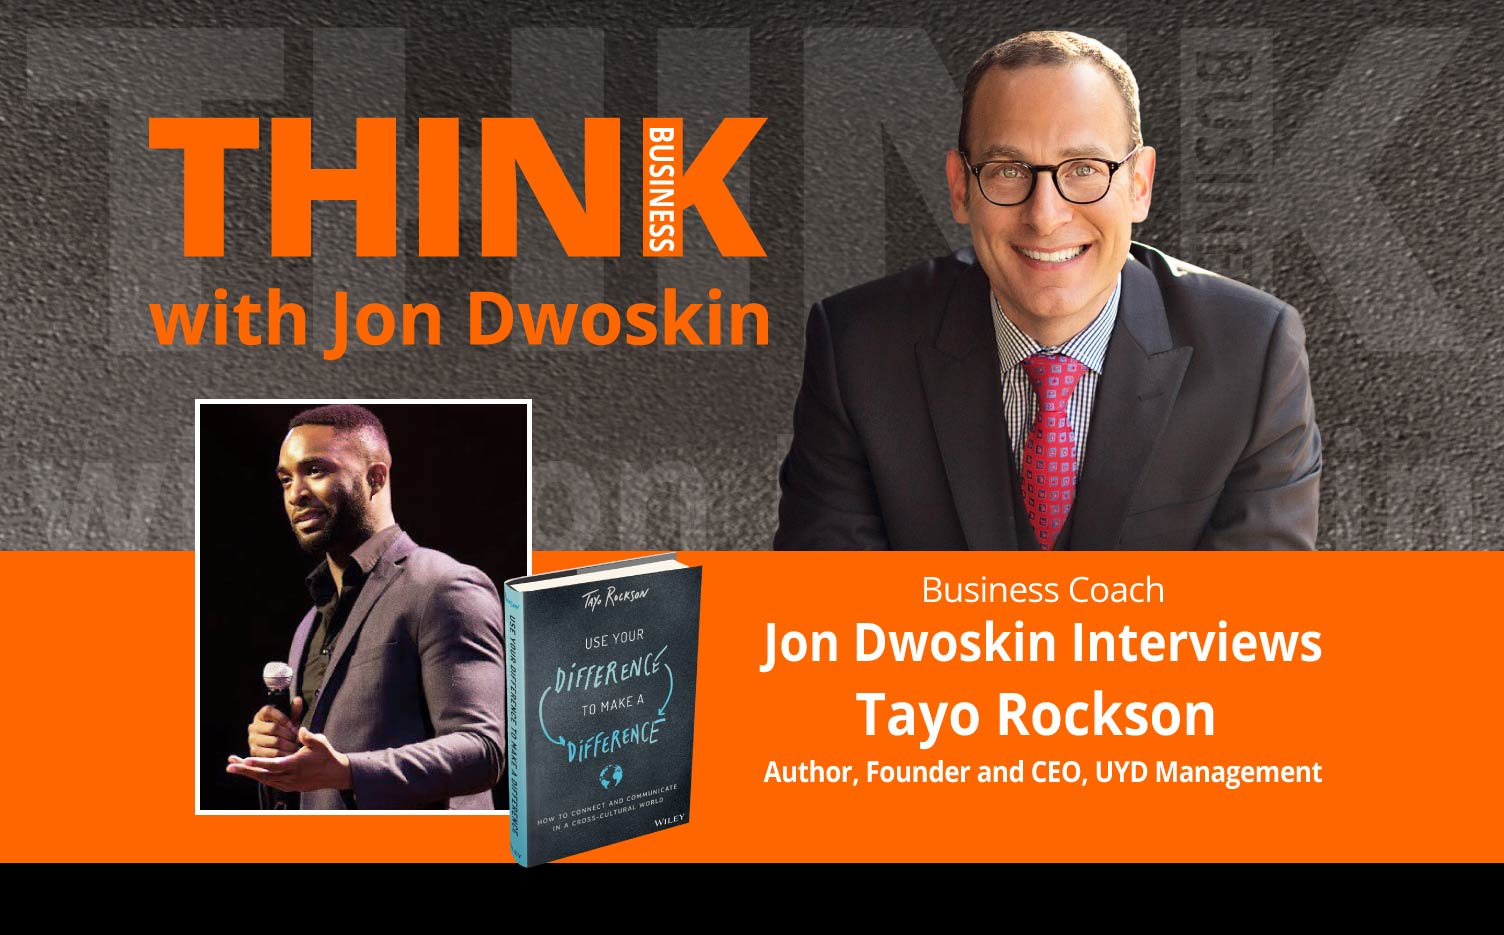 THINK Business Podcast: Jon Dwoskin Interviews Tayo Rockson, Author, Founder and CEO, UYD Management